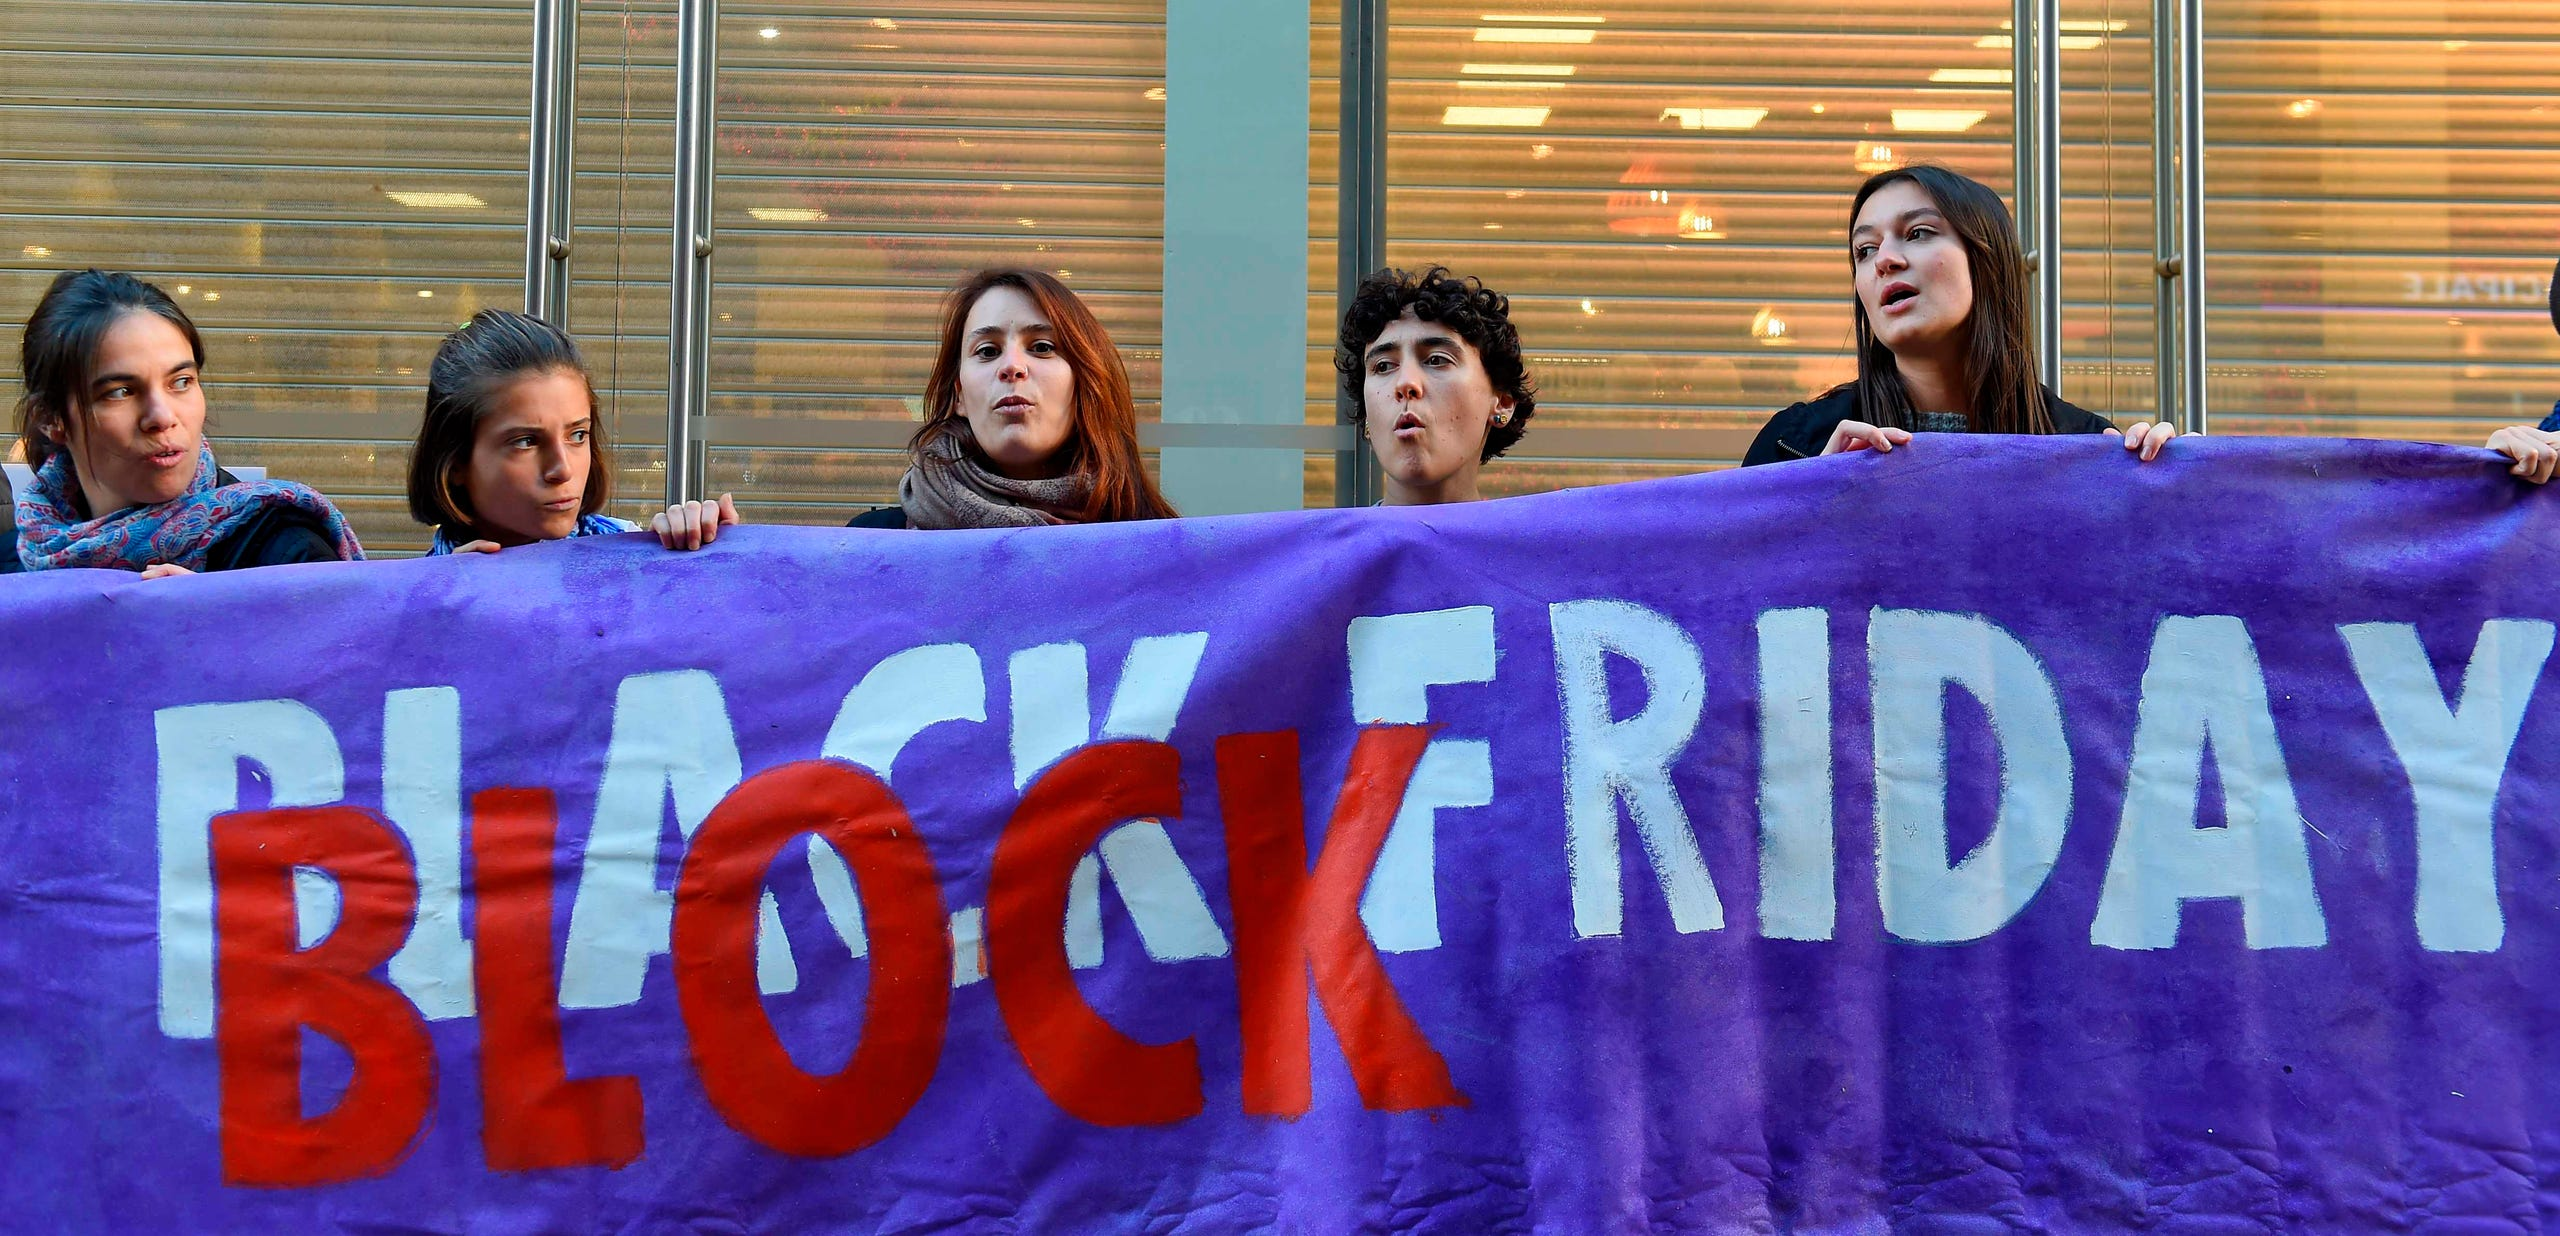 Black Friday Protests Target Consumerism And Climate Change